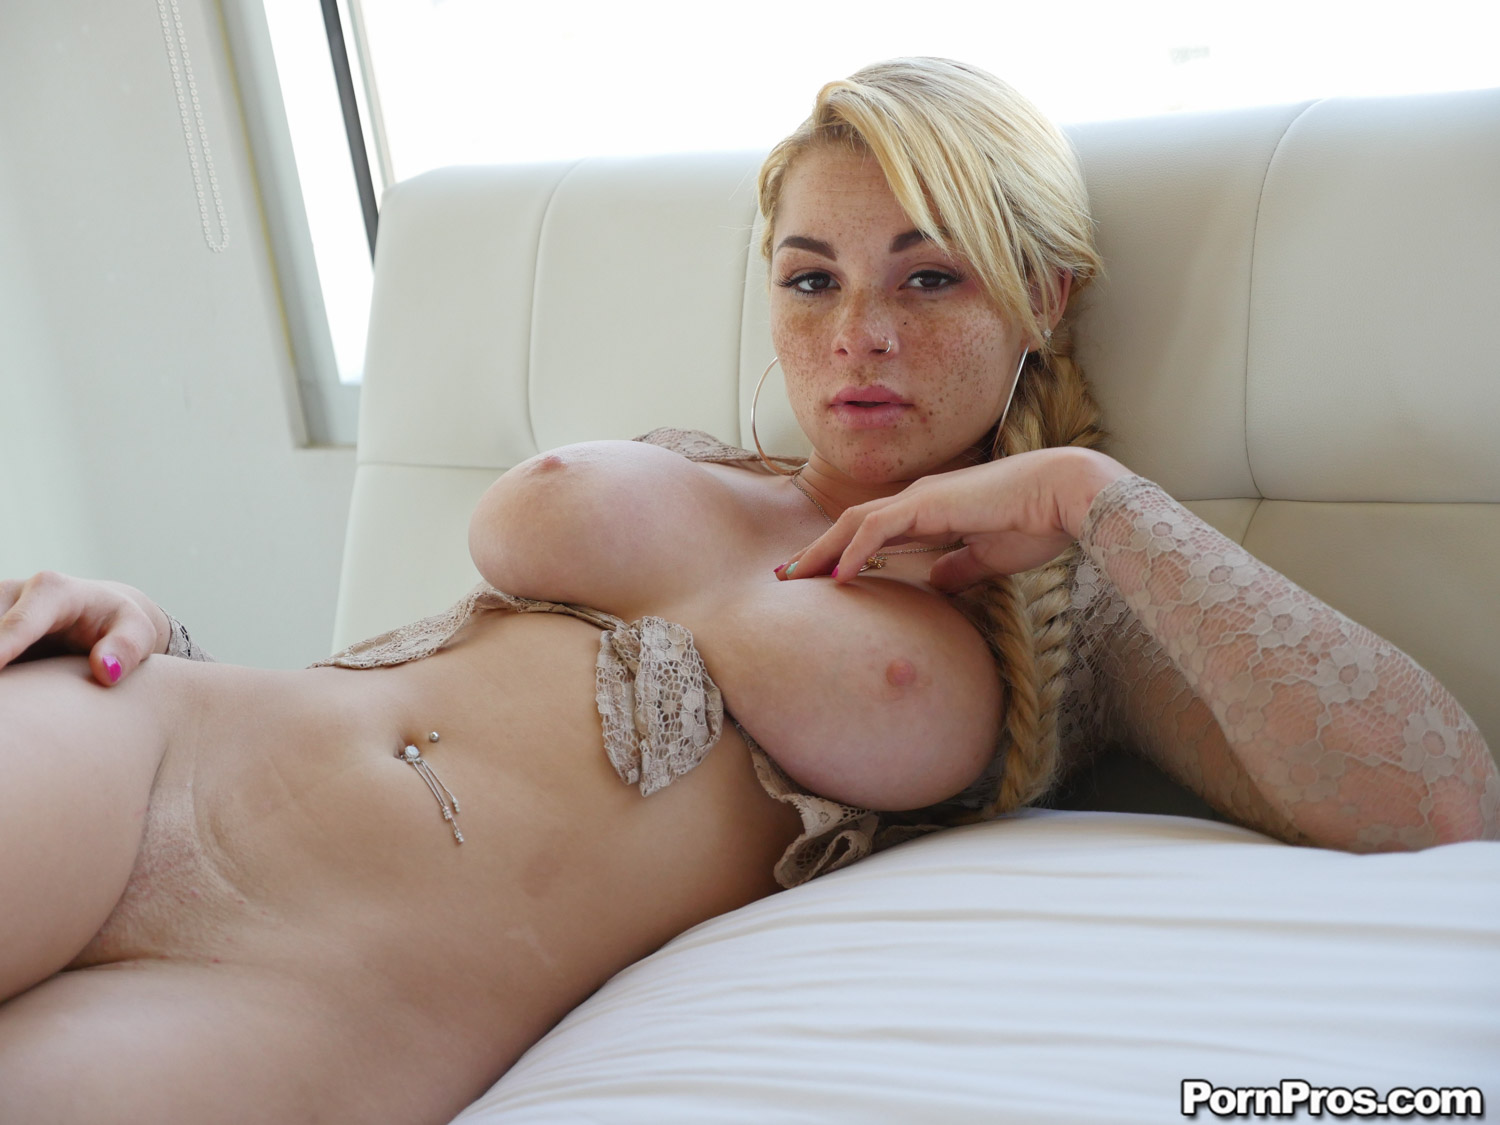 Ass traffic blonde girl deepthroats multple cocks get ass 8